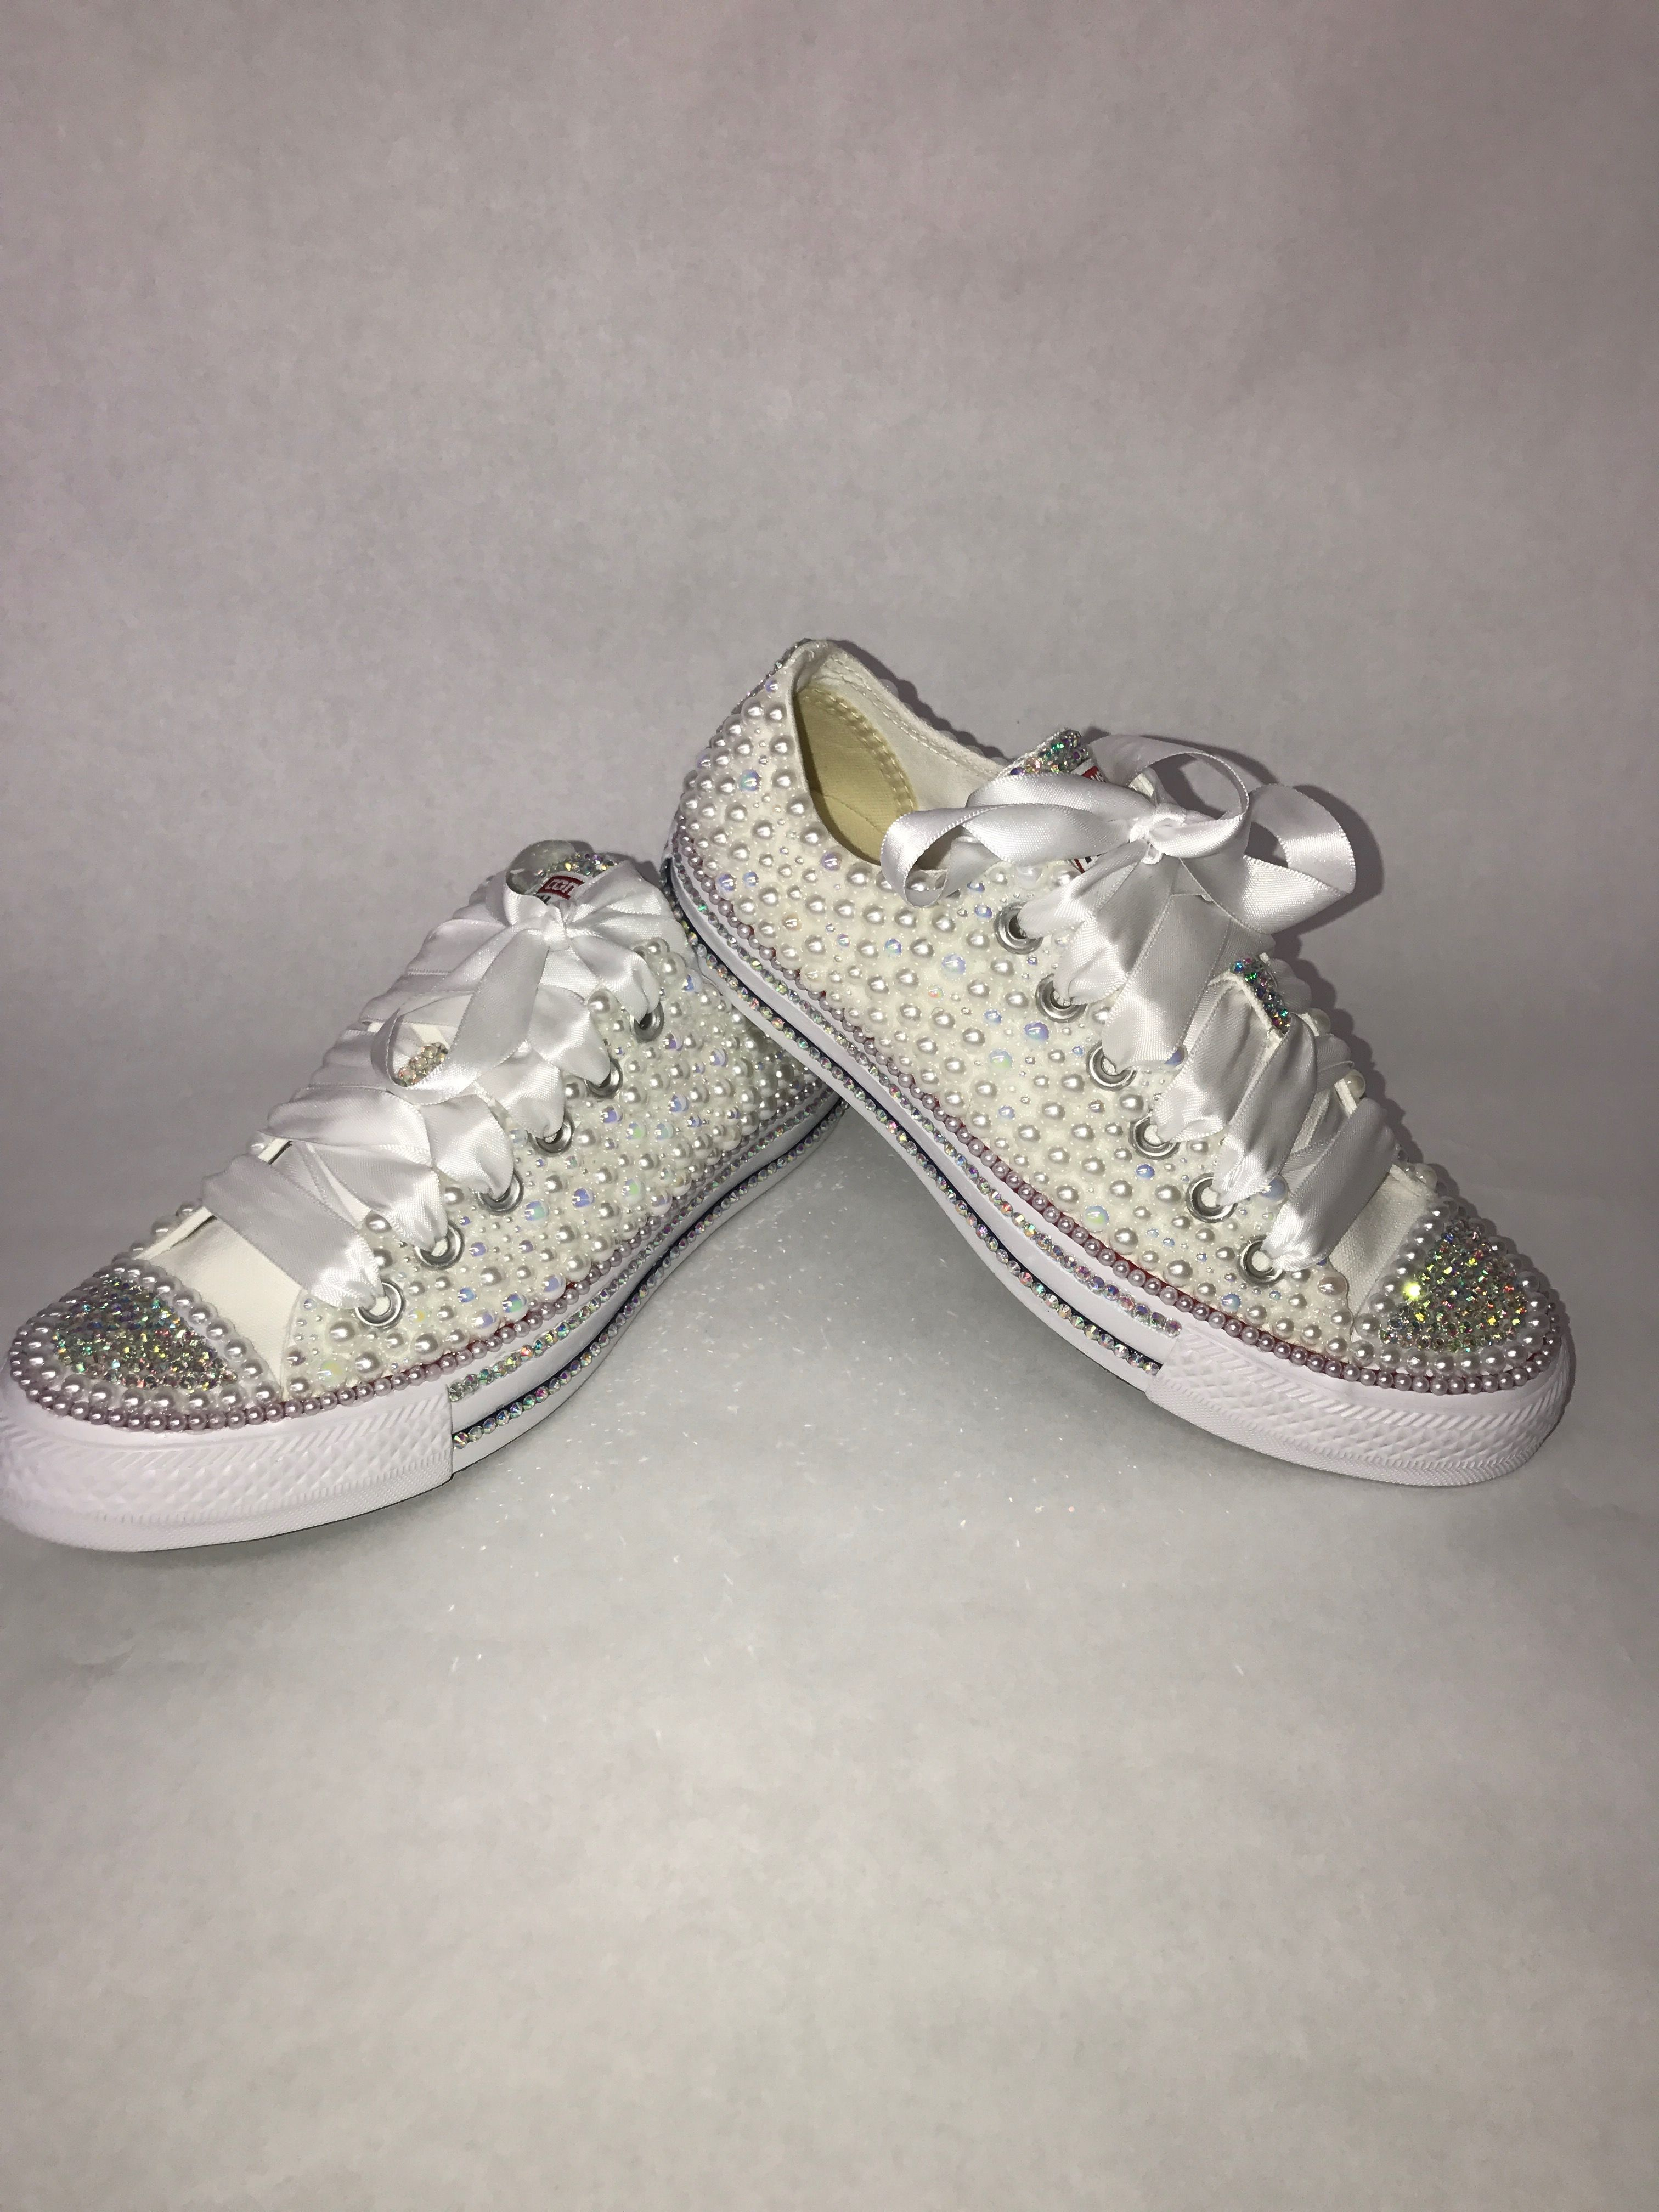 e7f16459891c Custom bling converse all star chuck taylor sneakers embellished with high  quality rhinestones and pearls. Perfect for weddings shoes